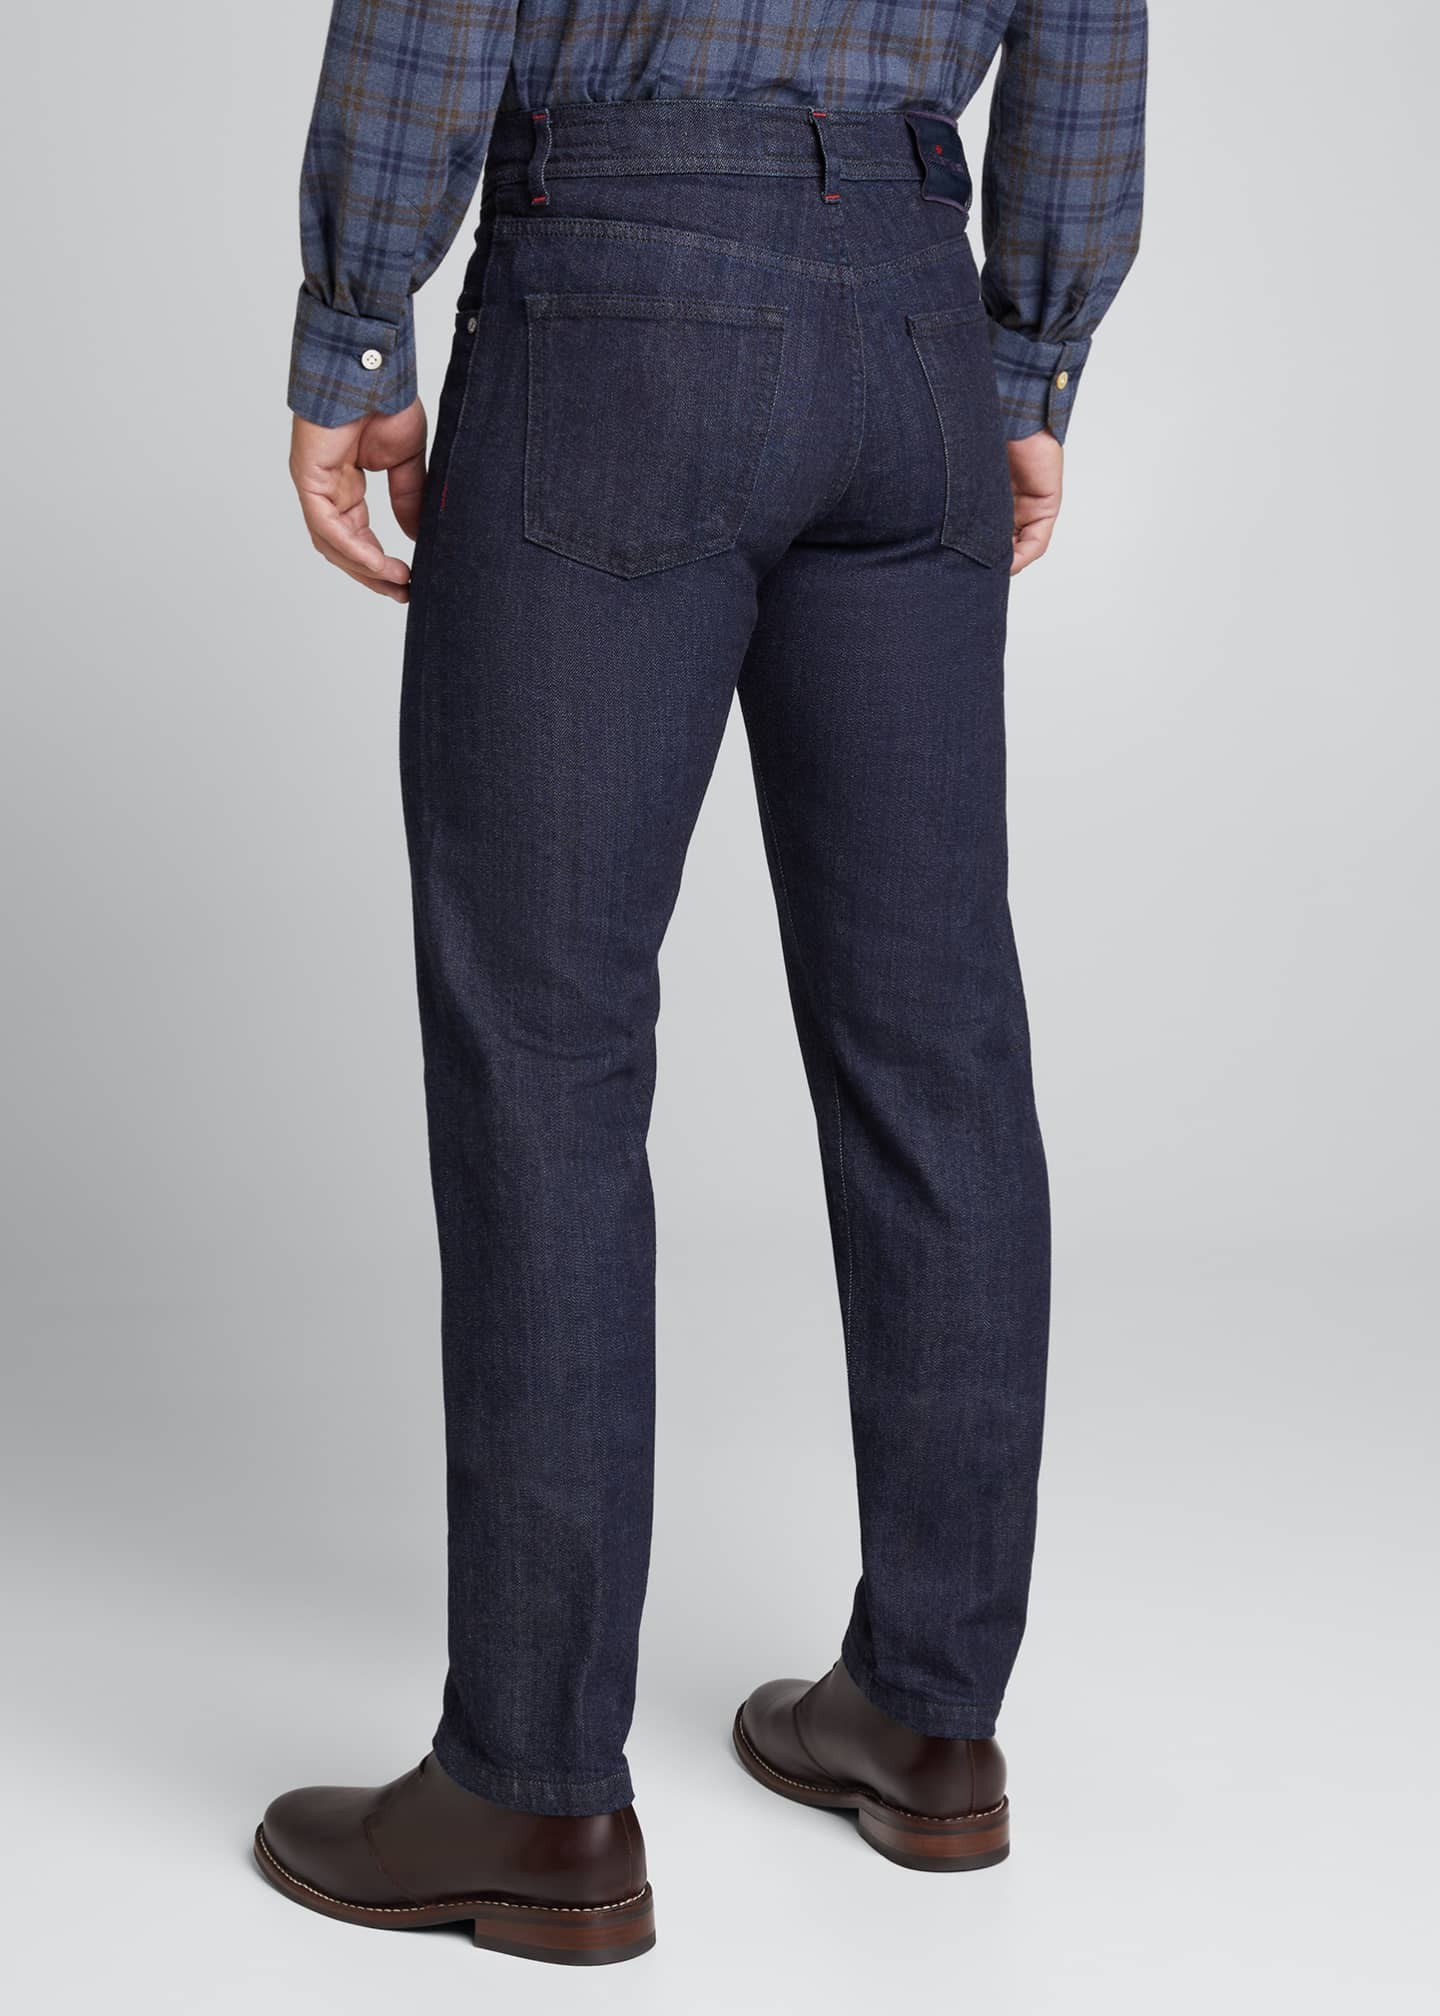 Image 2 of 4: Men's Classic Dark-Wash Jeans